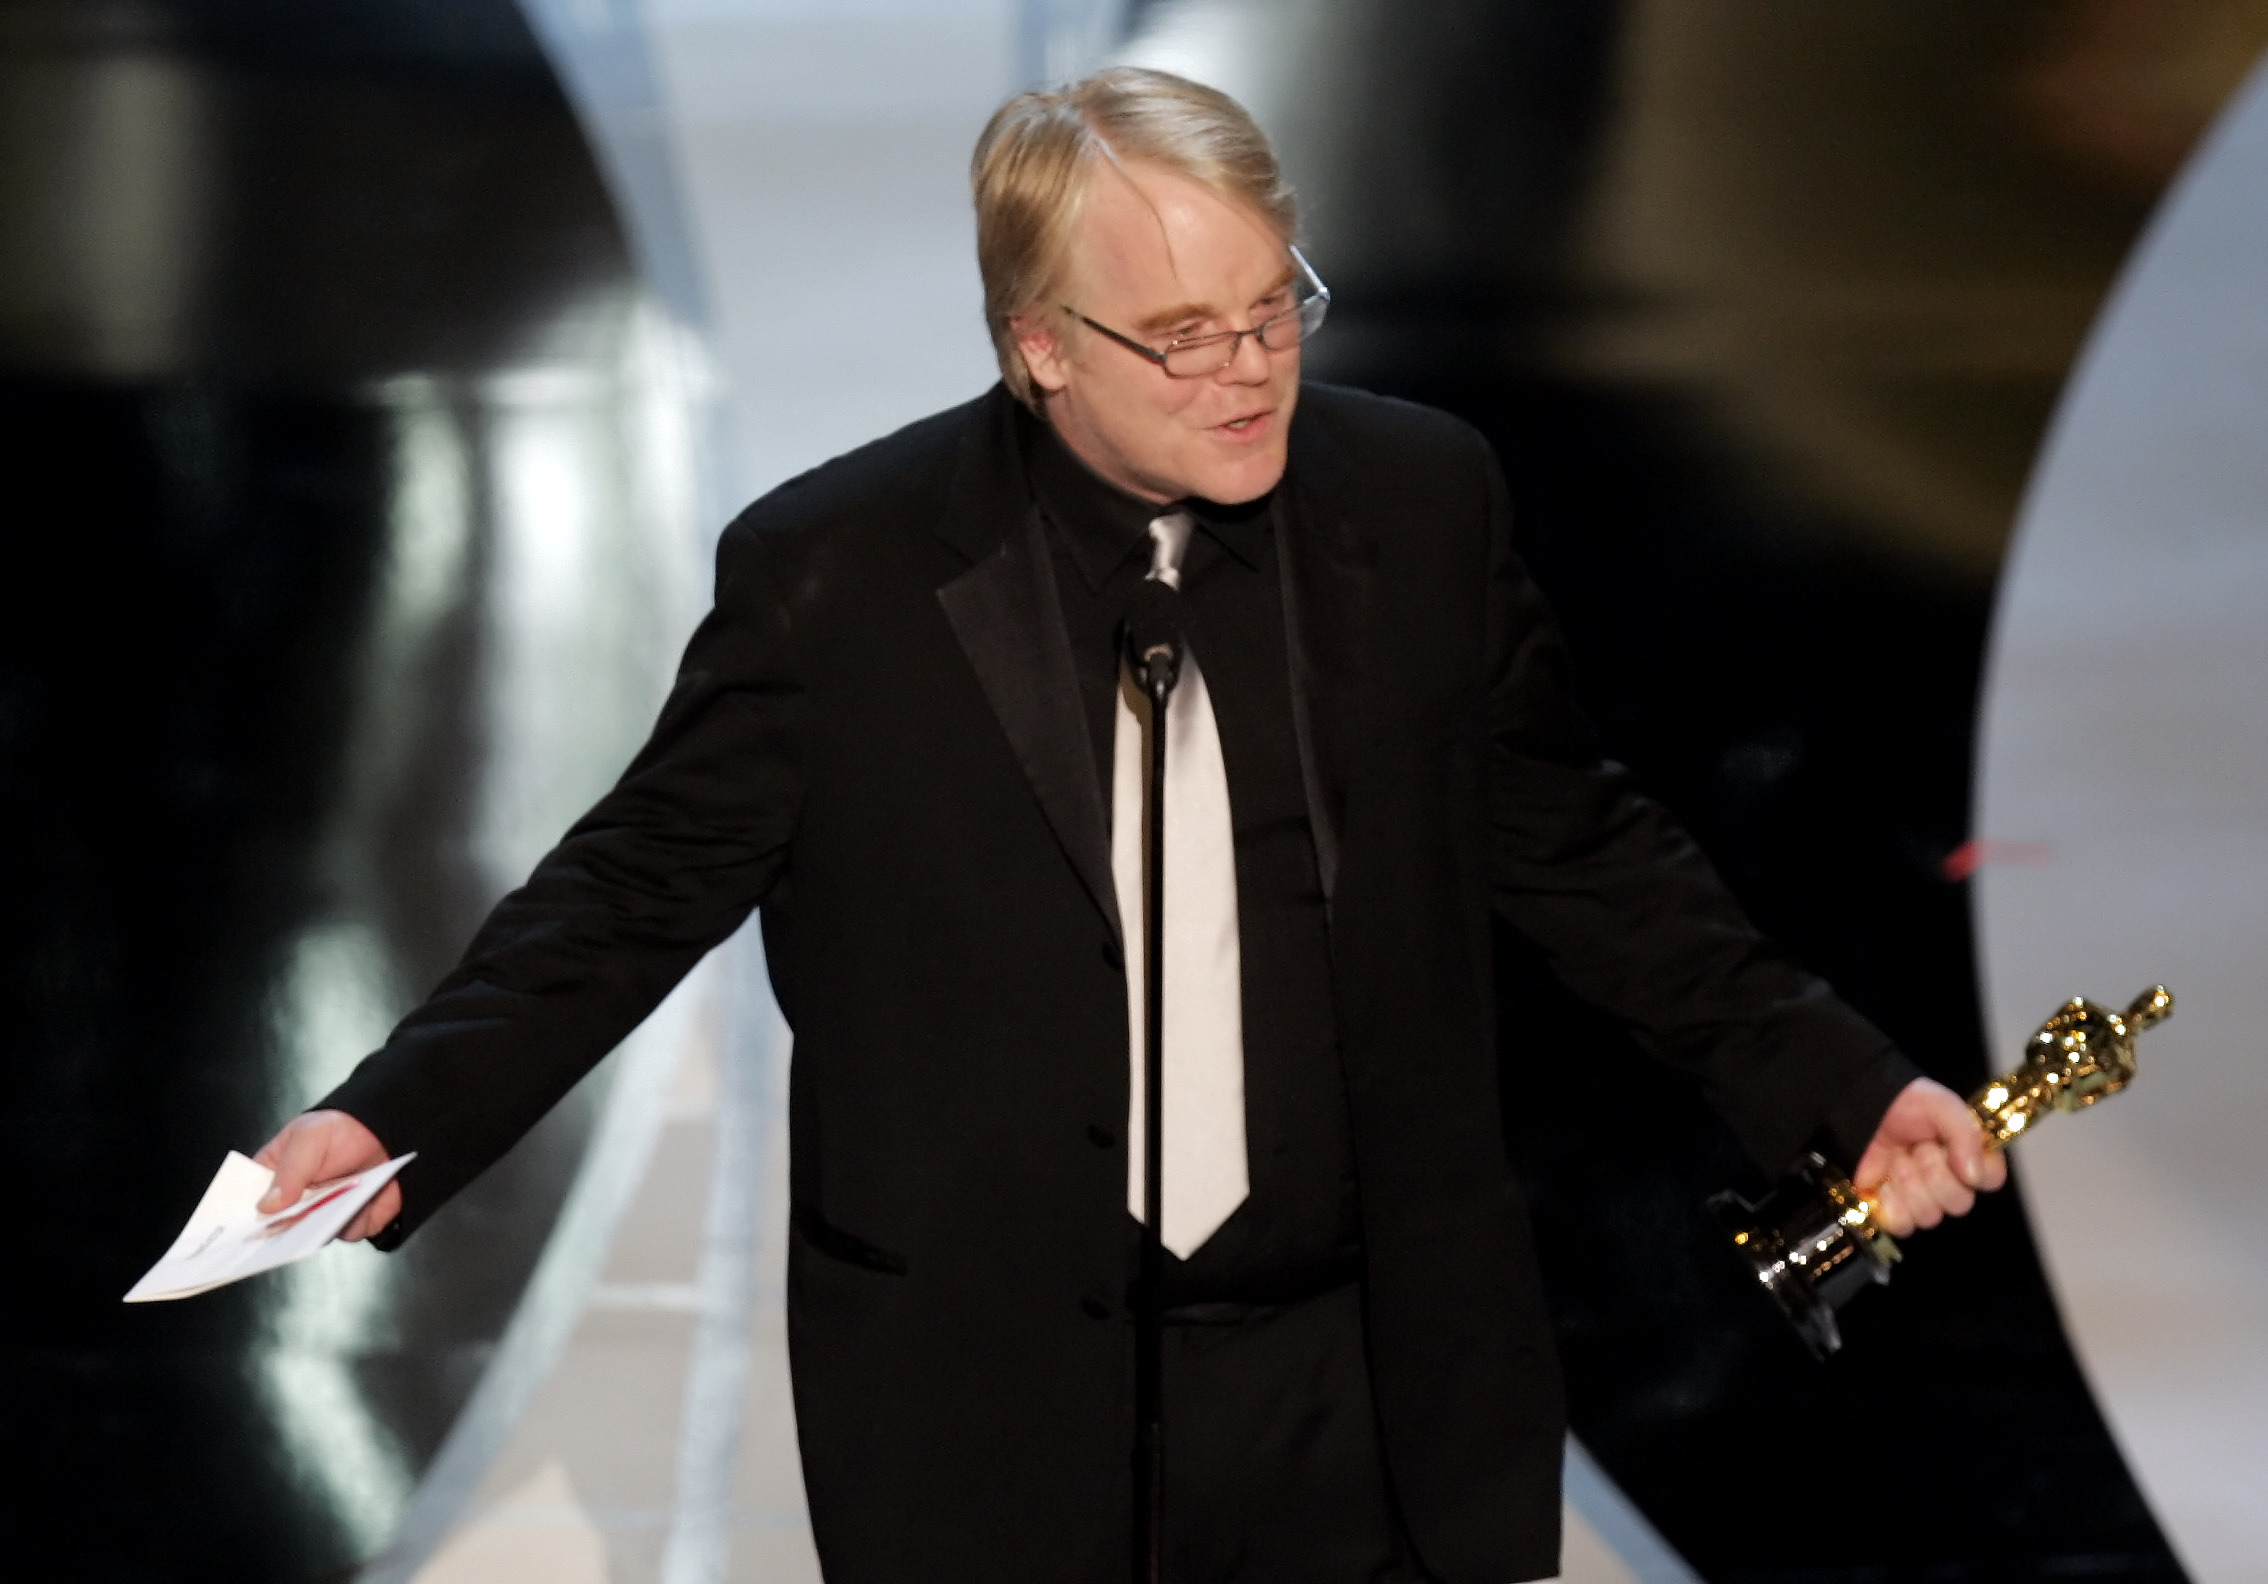 watch, philip, seymour, hoffman's, moving, 'capote', oscar, acceptance, speech,